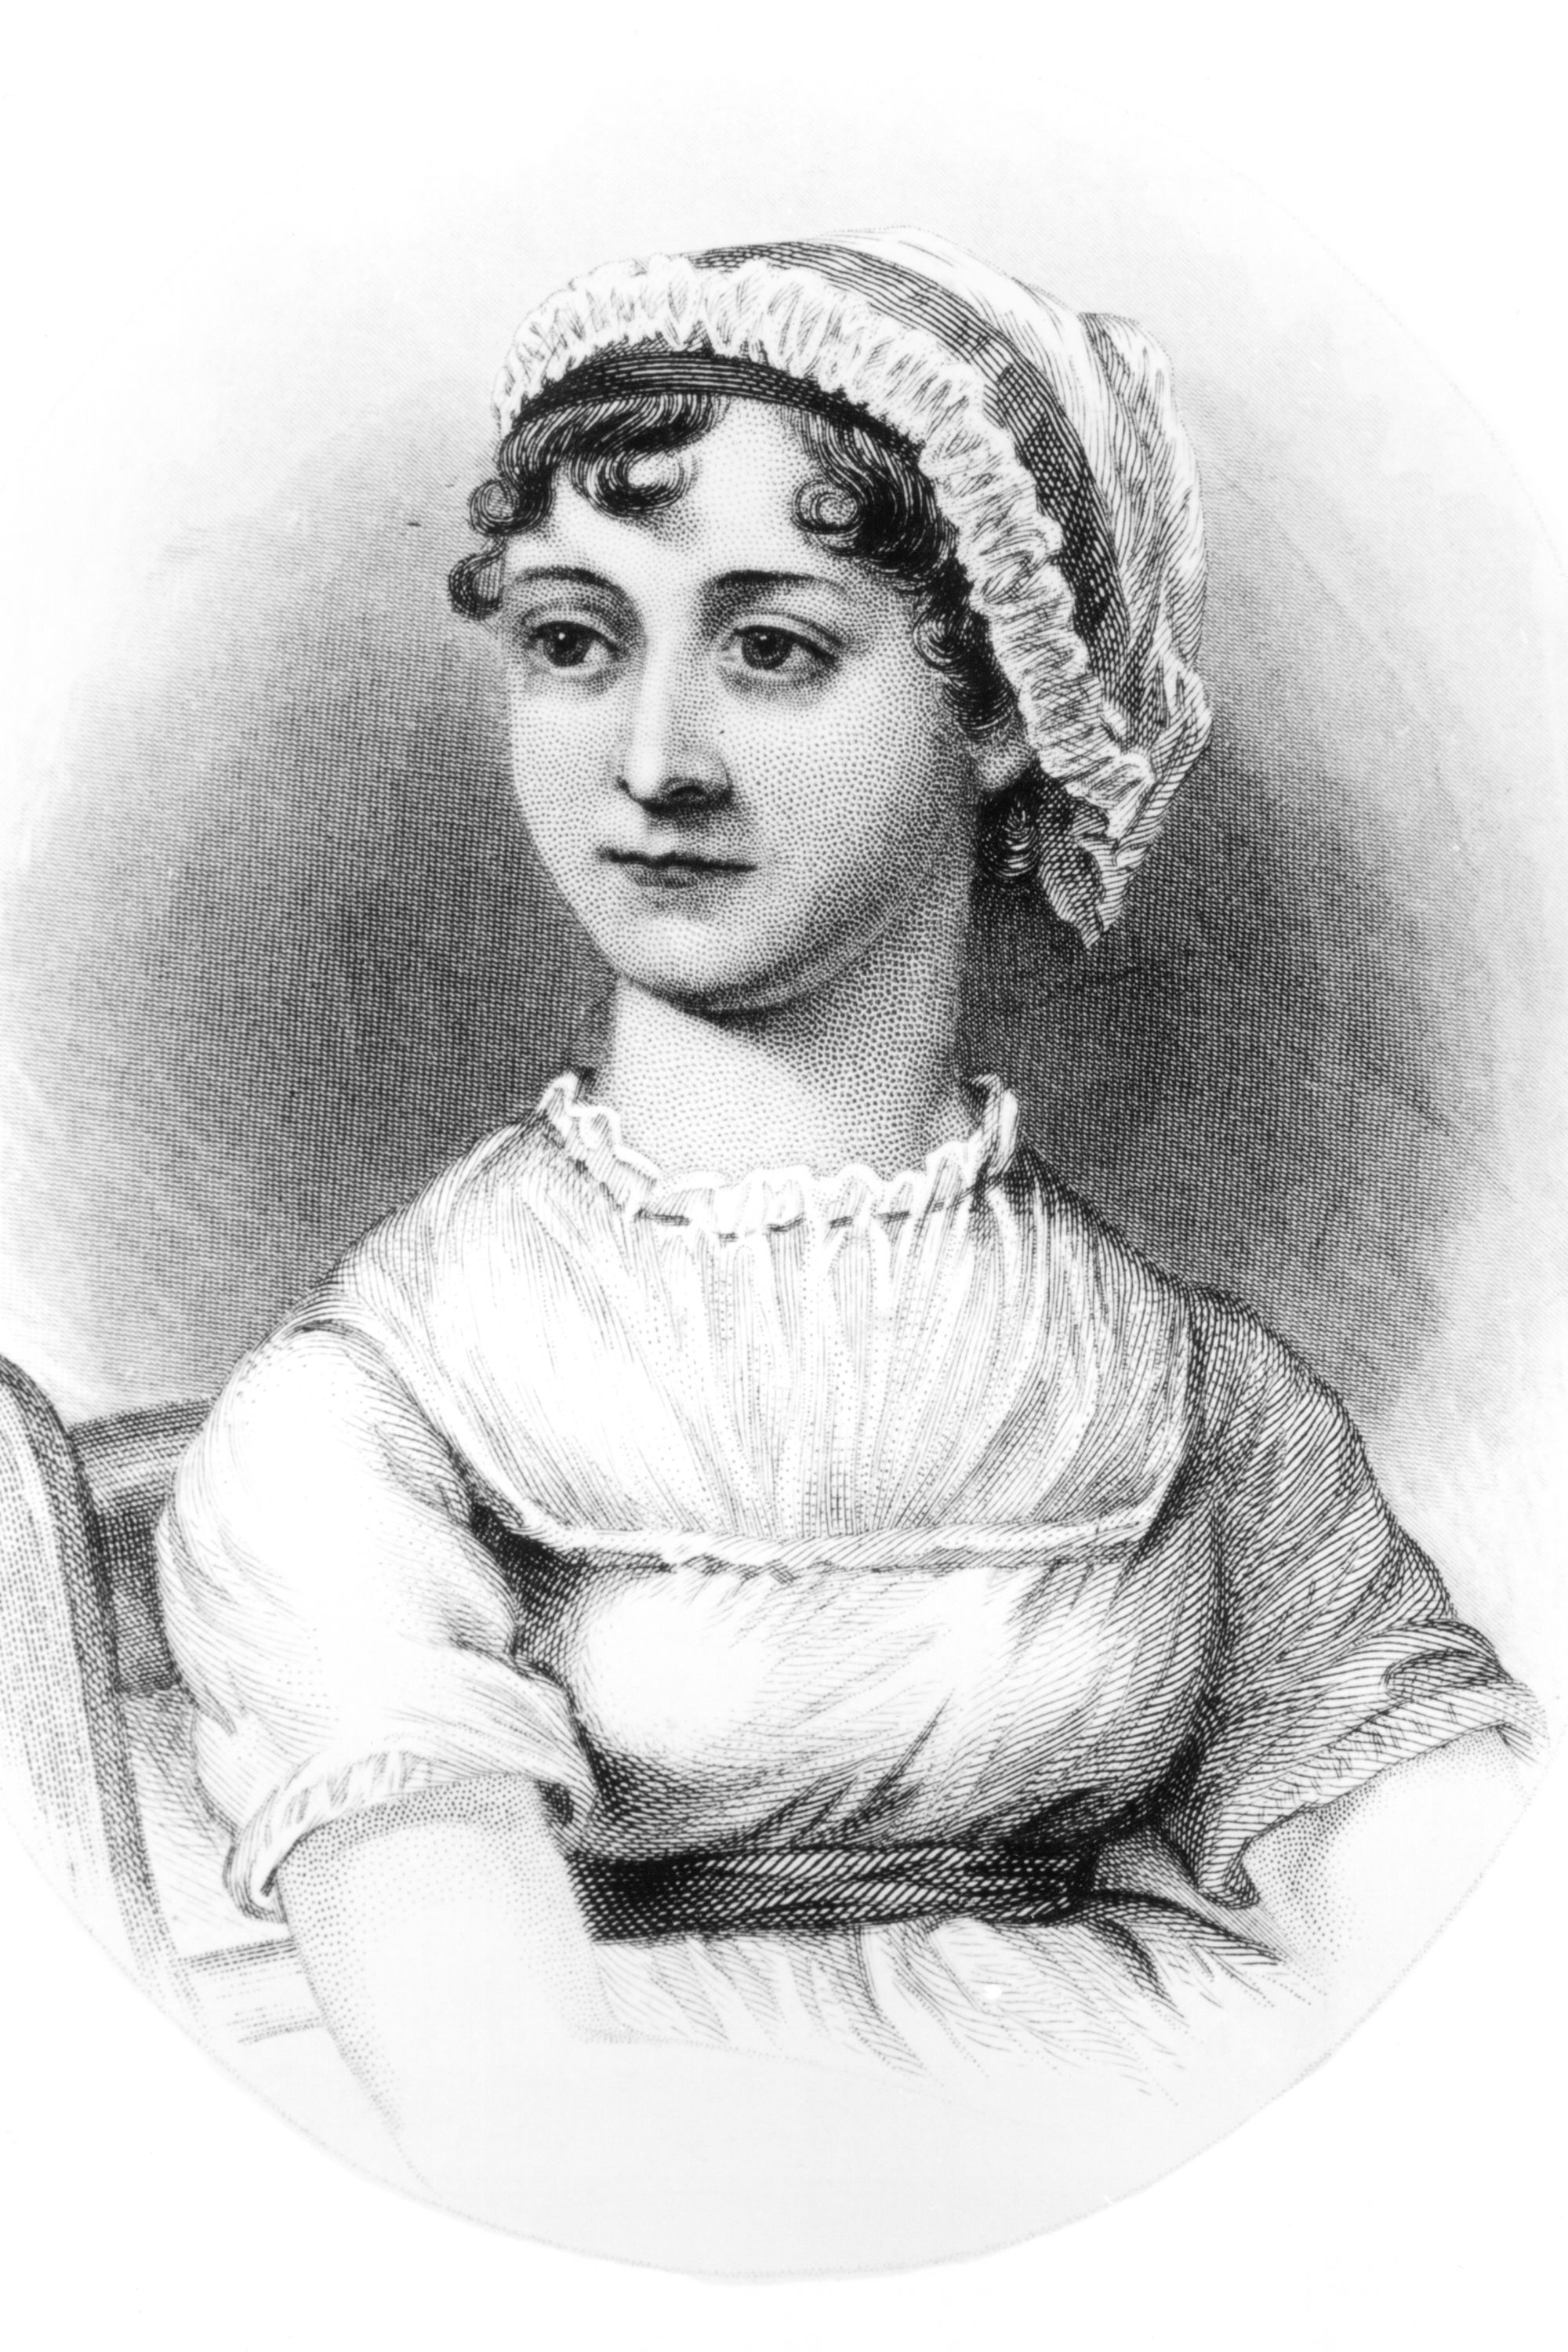 Has Jane Austen Been Airbrushed To Look More Doll-like'